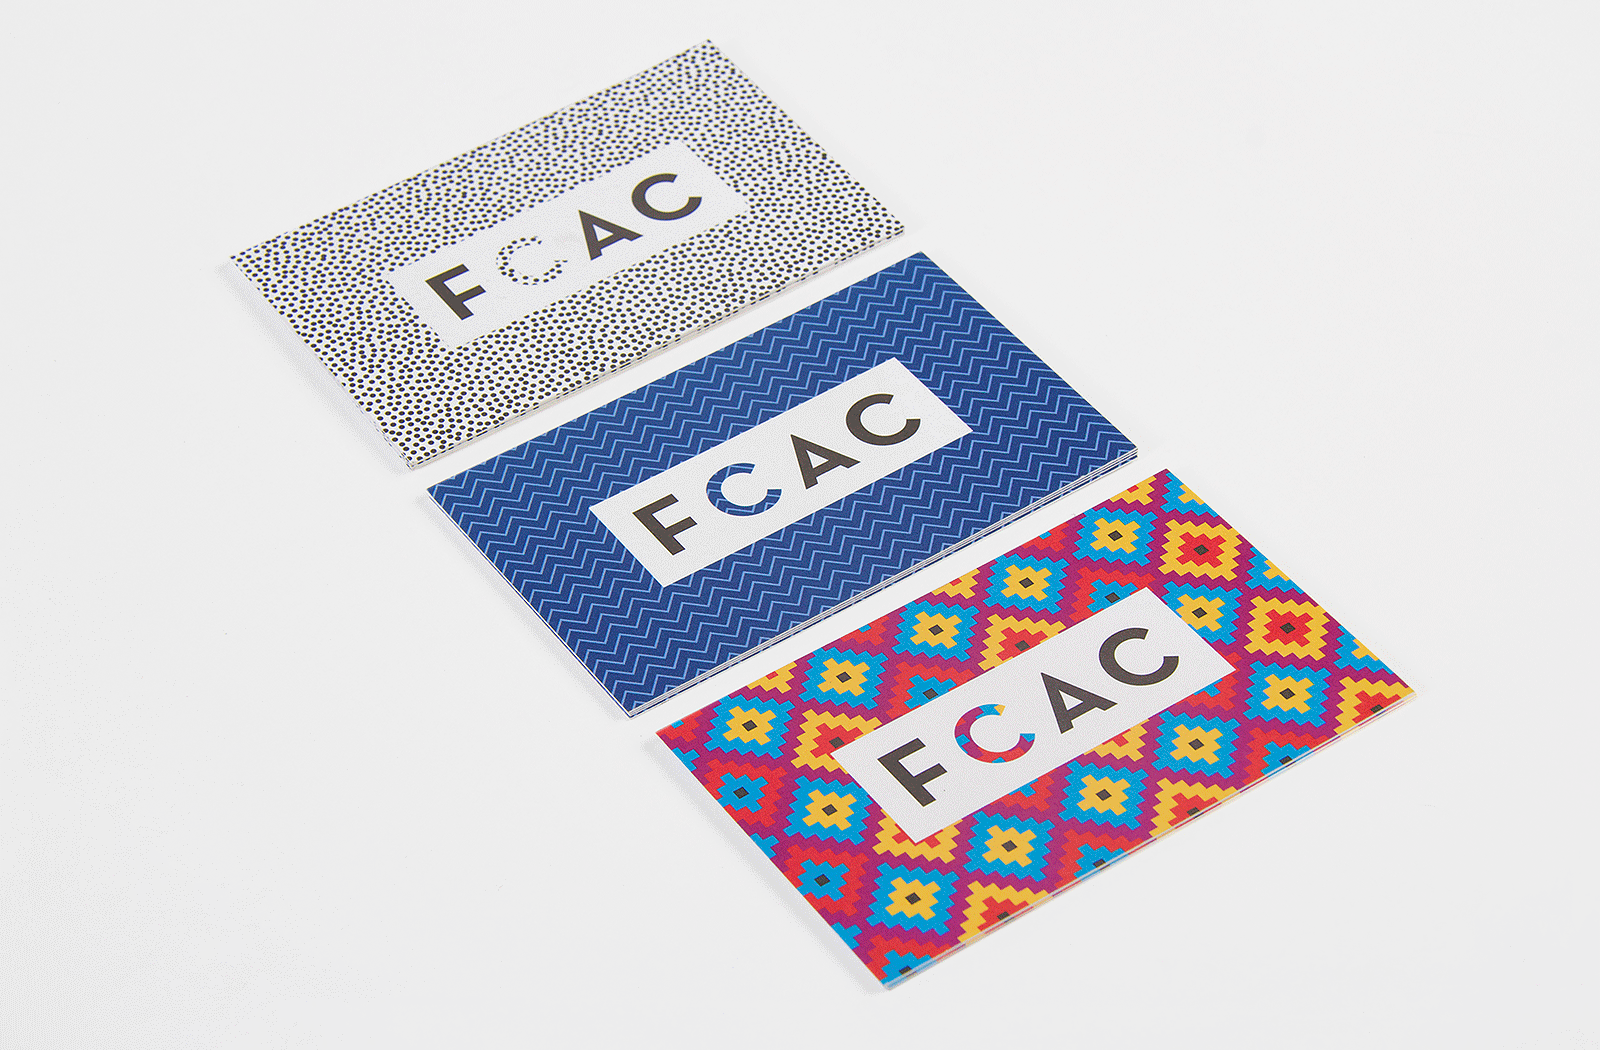 fcac_bc_line.png